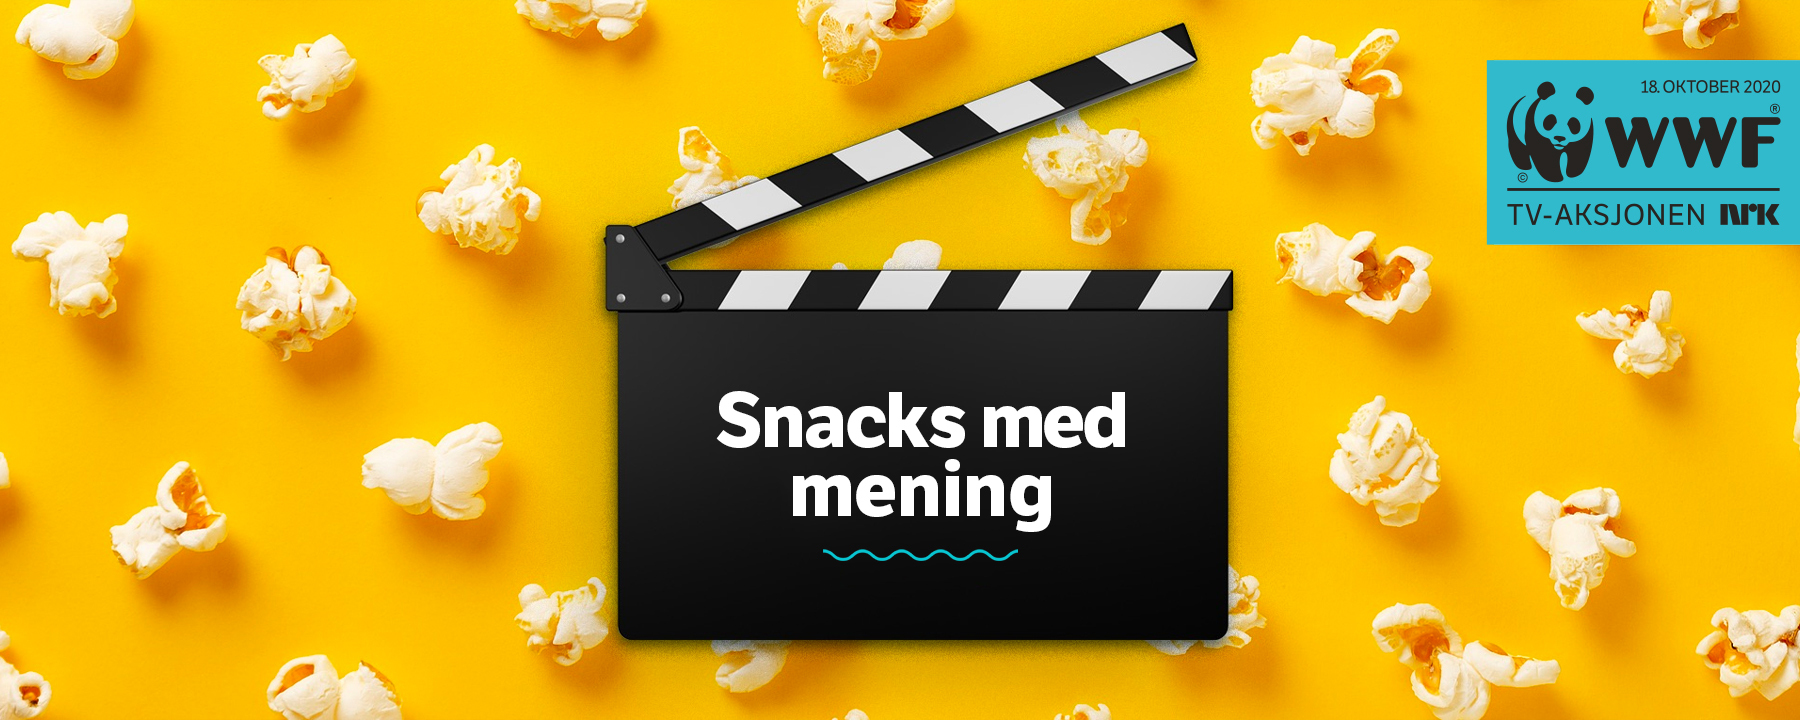 Snacks med mening